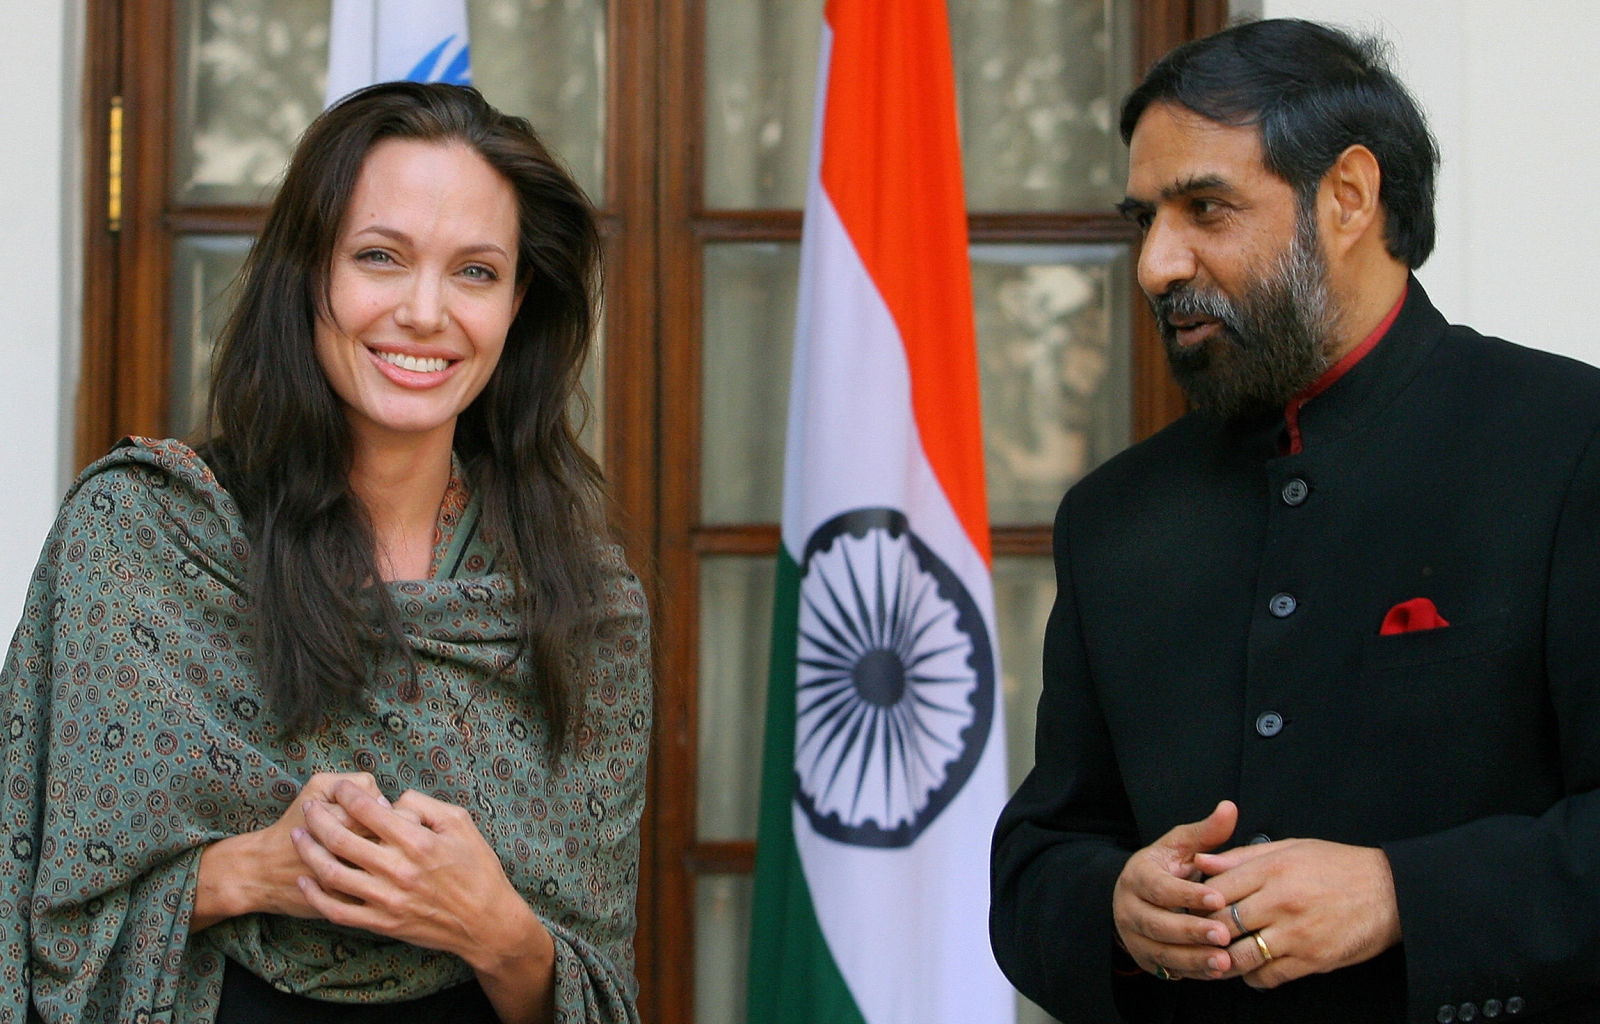 Angelina Jolie and Anand Sharma